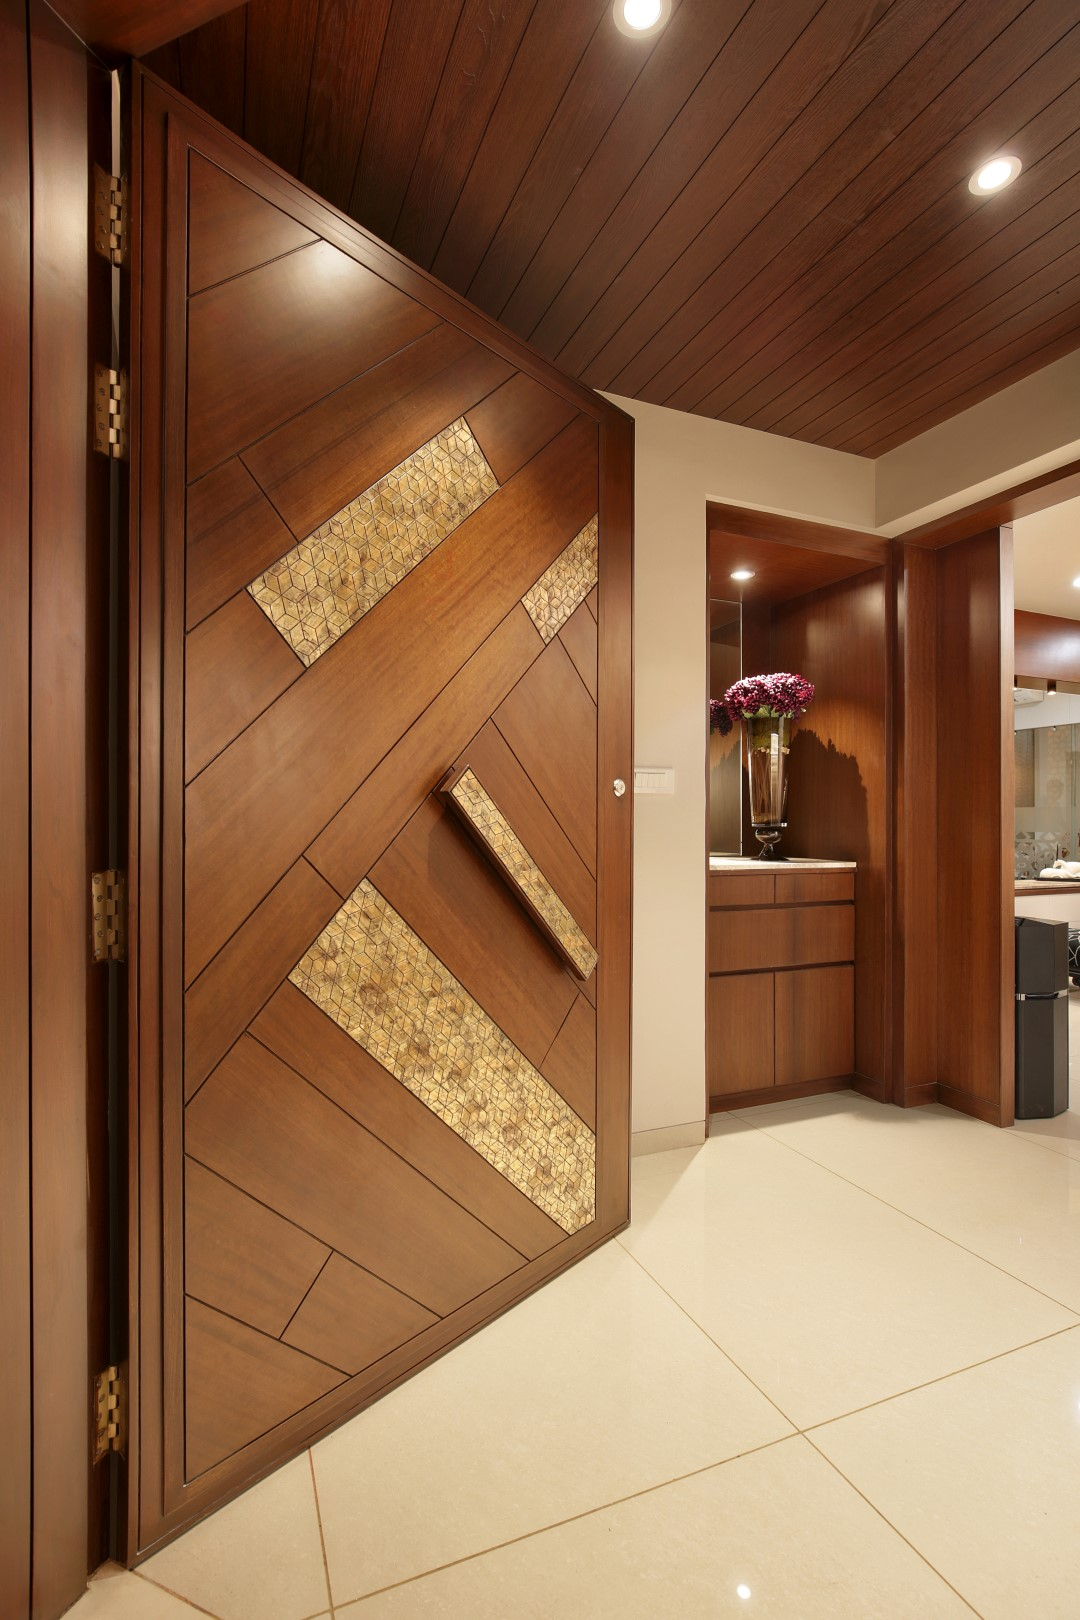 Doors Design: 3 BHK Flat Interiors - The Oak Woods